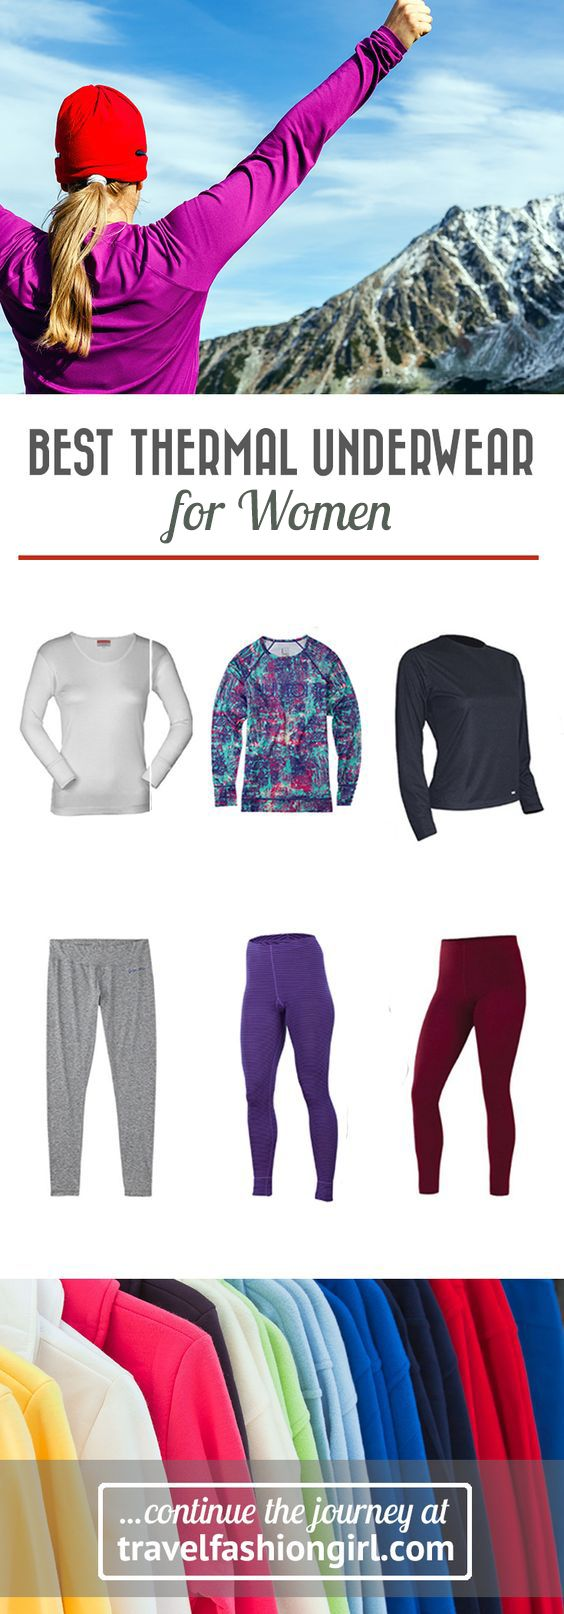 What do smart travelers have in common? They all try their best to pack light, and their secret to cold weather travel is thermal underwear! Read on to discover our top ten brands for thermal underwear for women. http://travelfashiongirl.com/best-thermal-underwear-for-women/ via @travlfashngirl #packing #list #travel